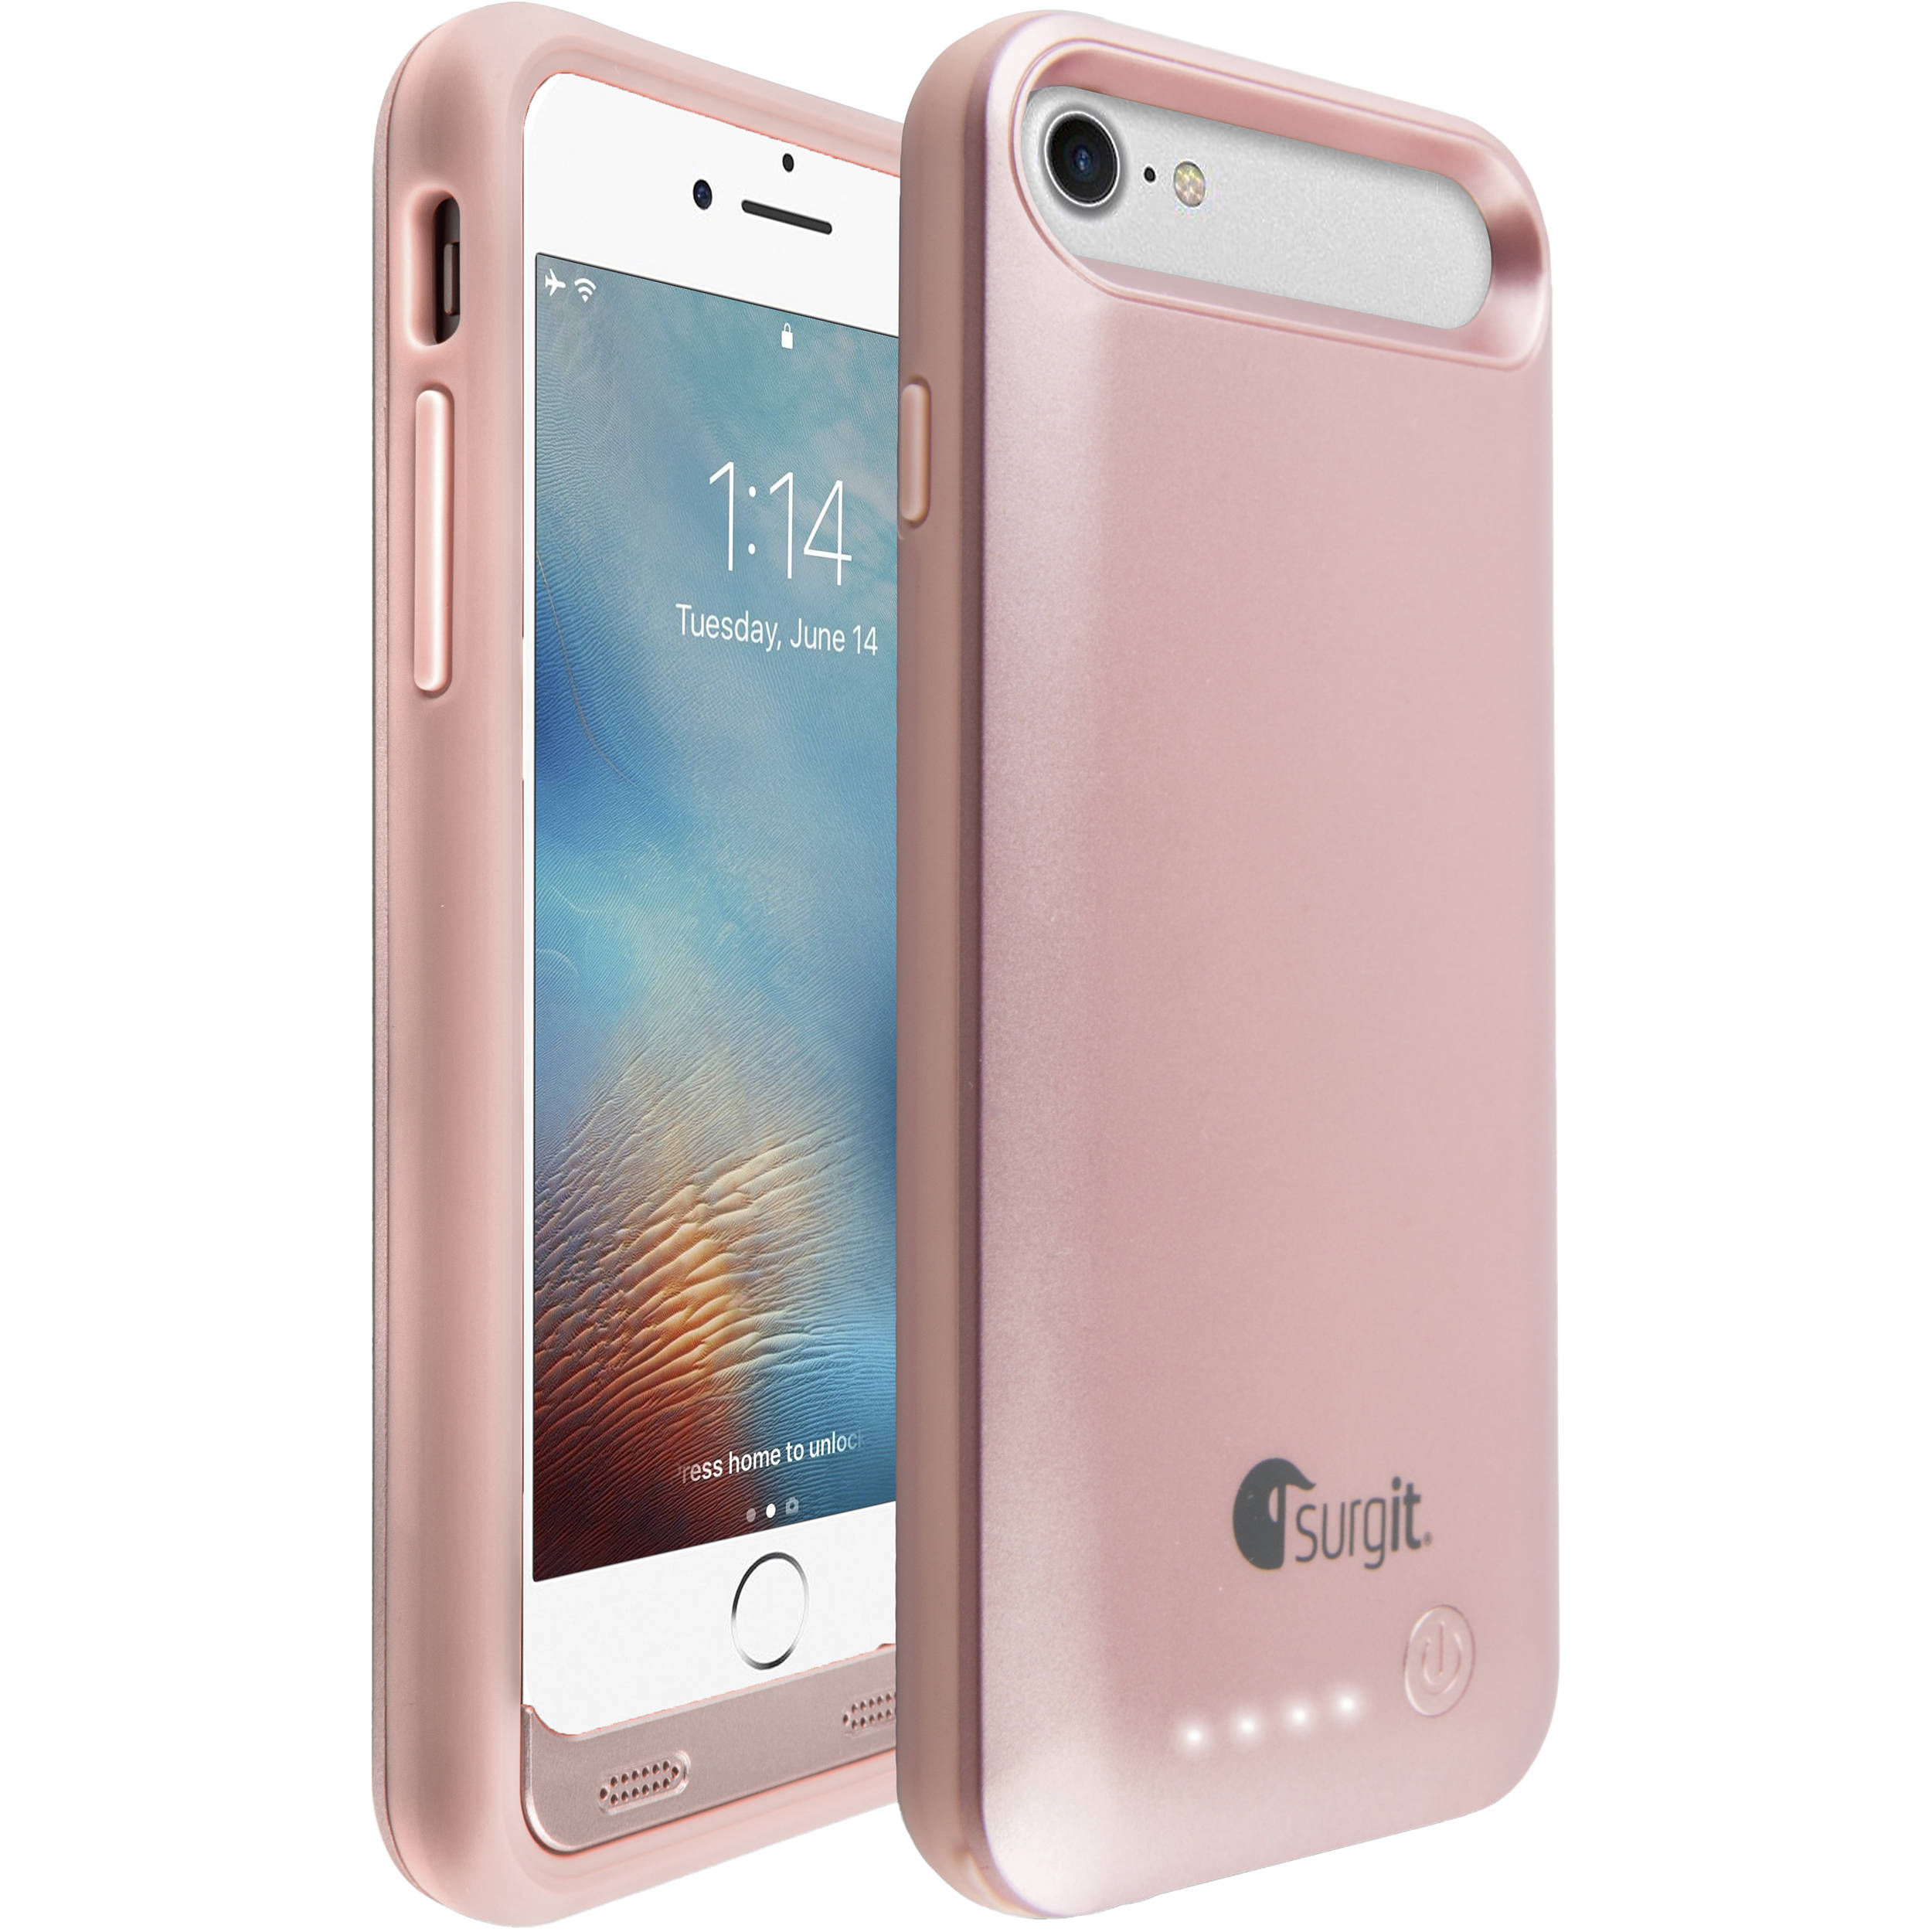 Plus Rose Gold IPod IPad Or IPhone Not Included